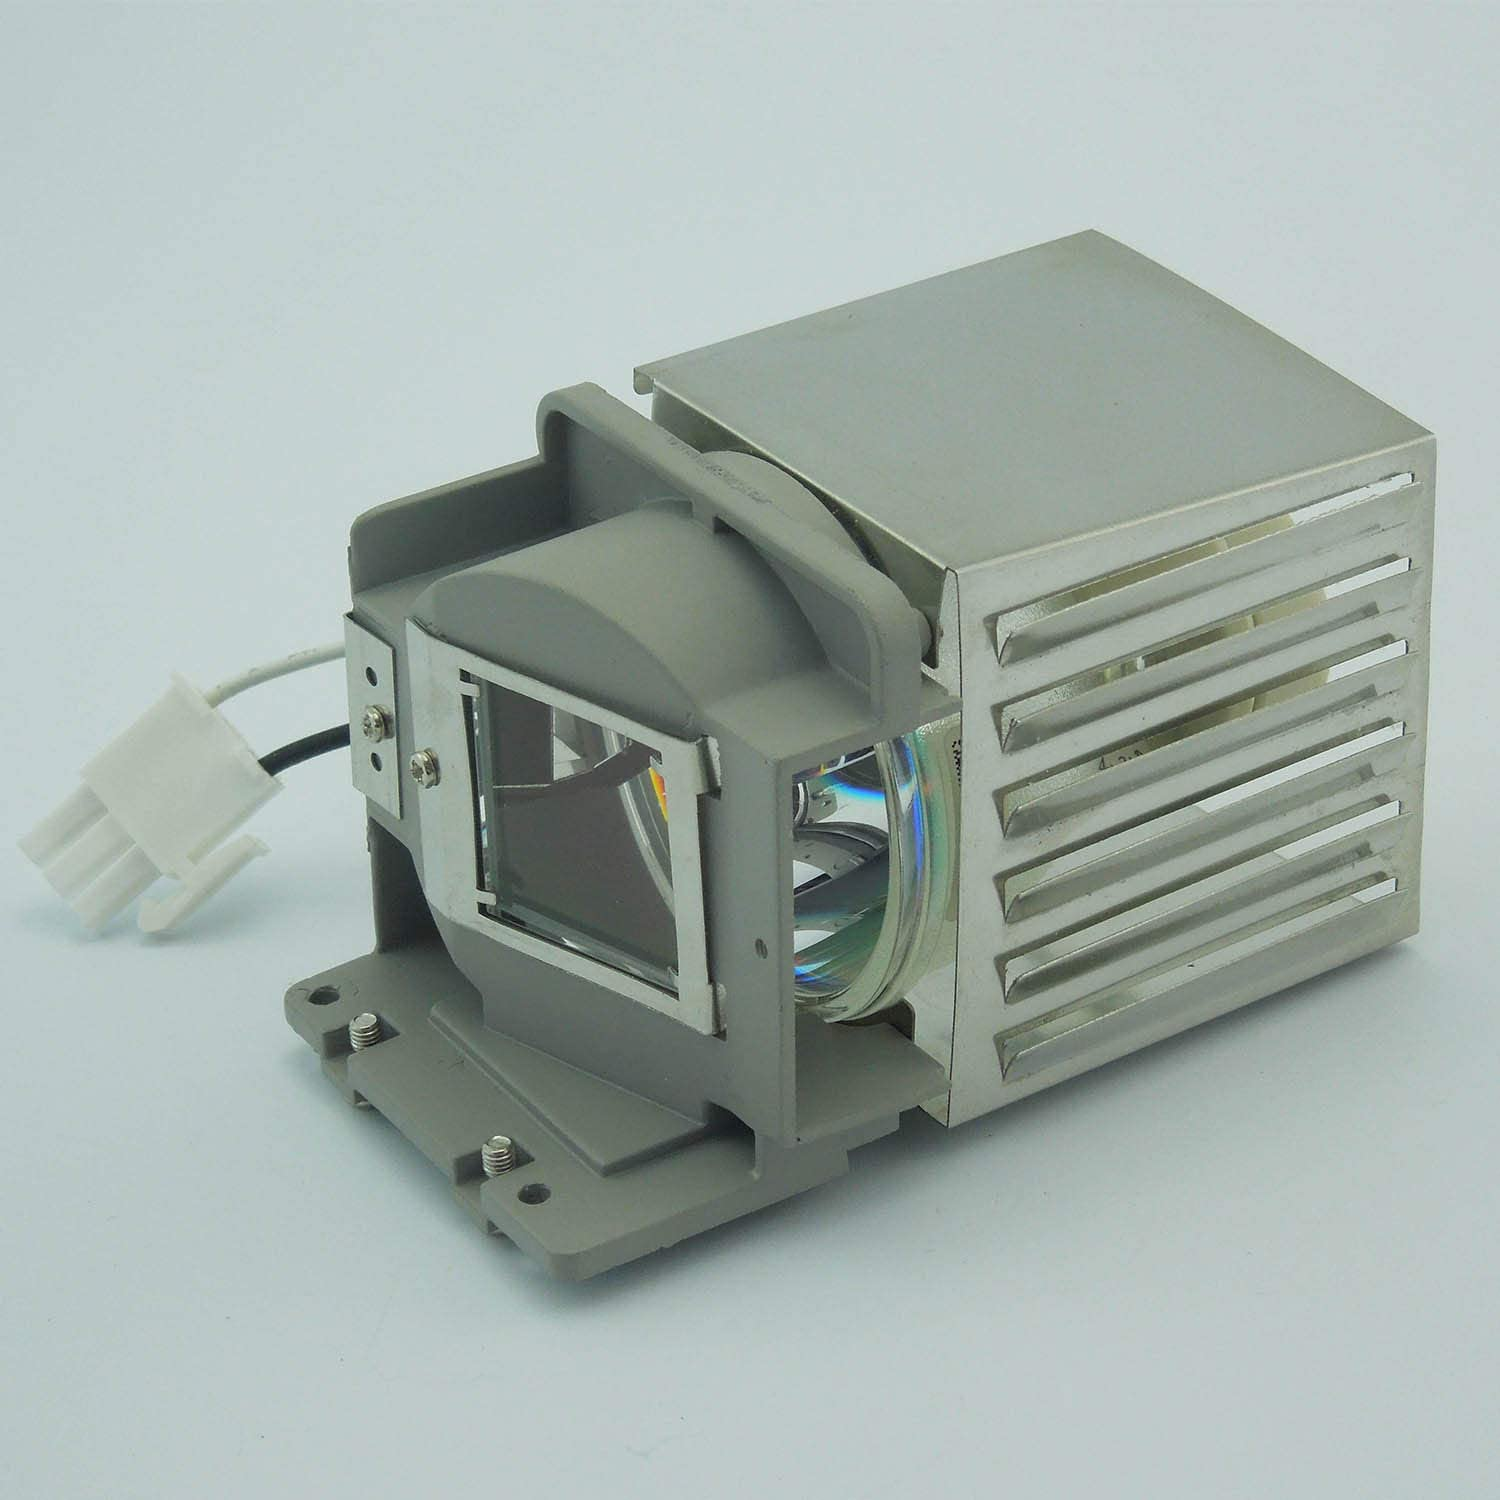 CTLAMP sp-lamp-069 Projector Lamp Module SPLAMP069 Bulb with Housing Compatible with SP-LAMP-069 INFOCUS IN112 IN114 IN116